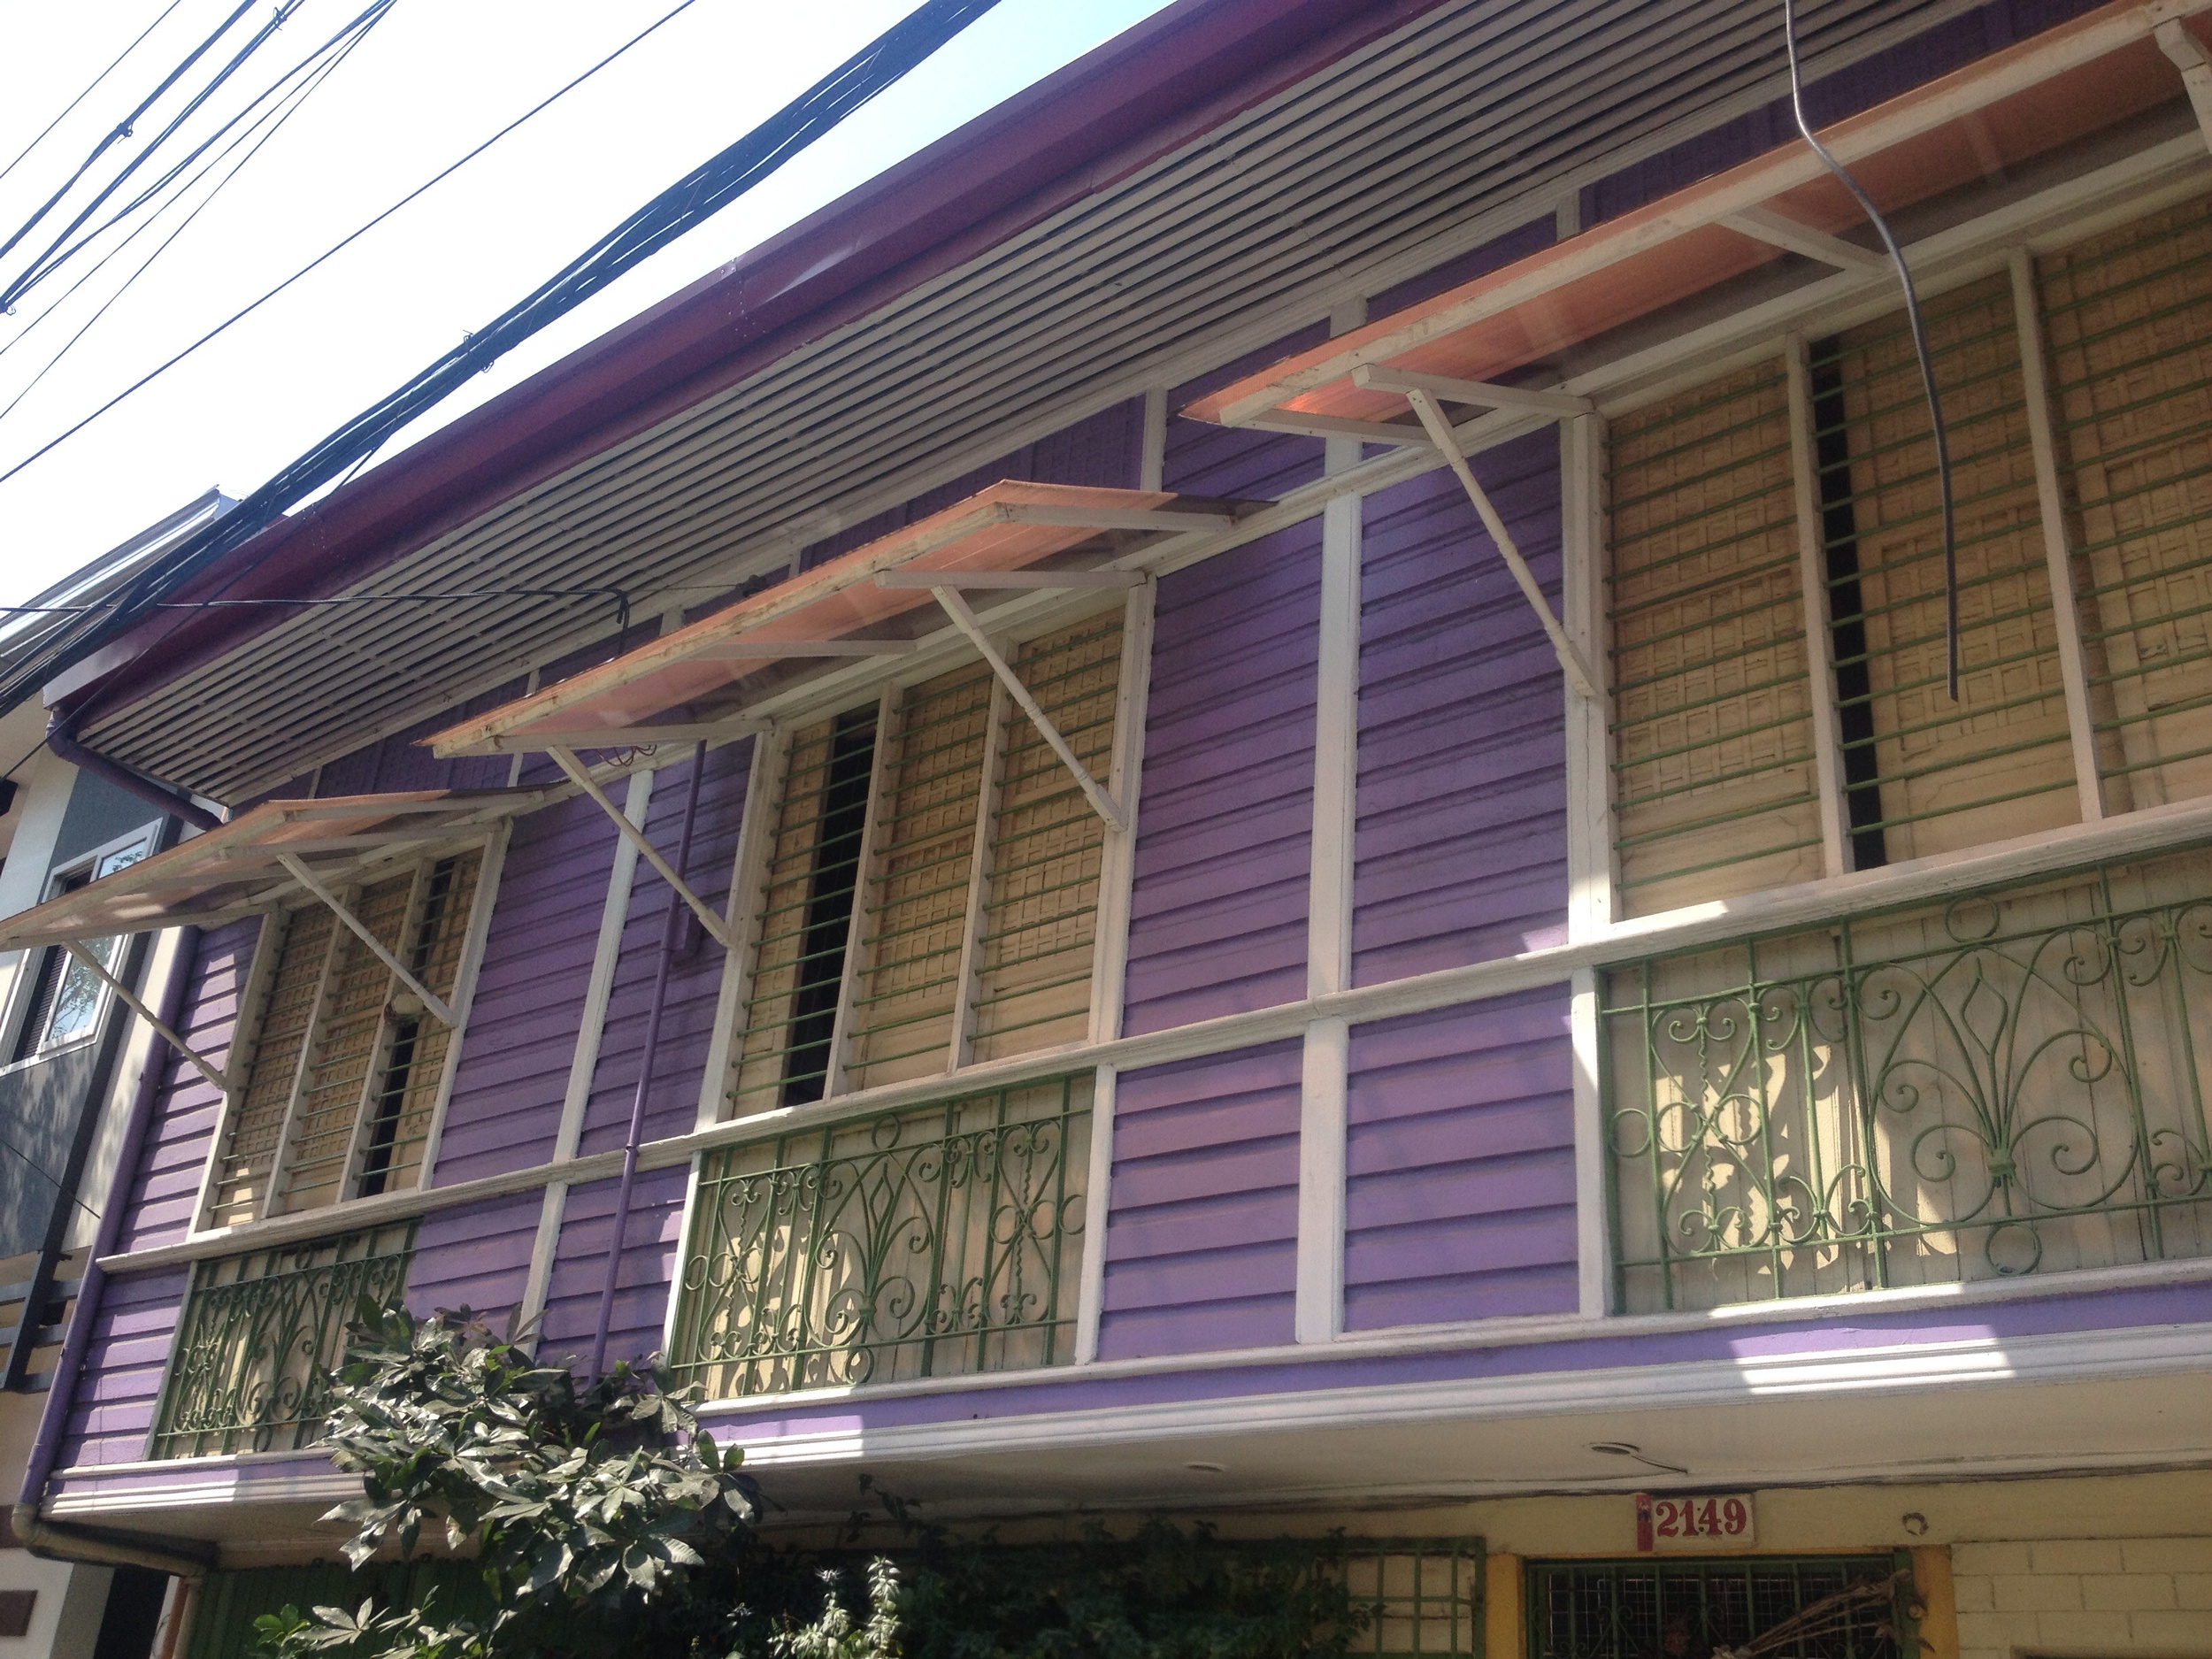 Adjustable window shades are found on heritage homes such as this one in Navotas.